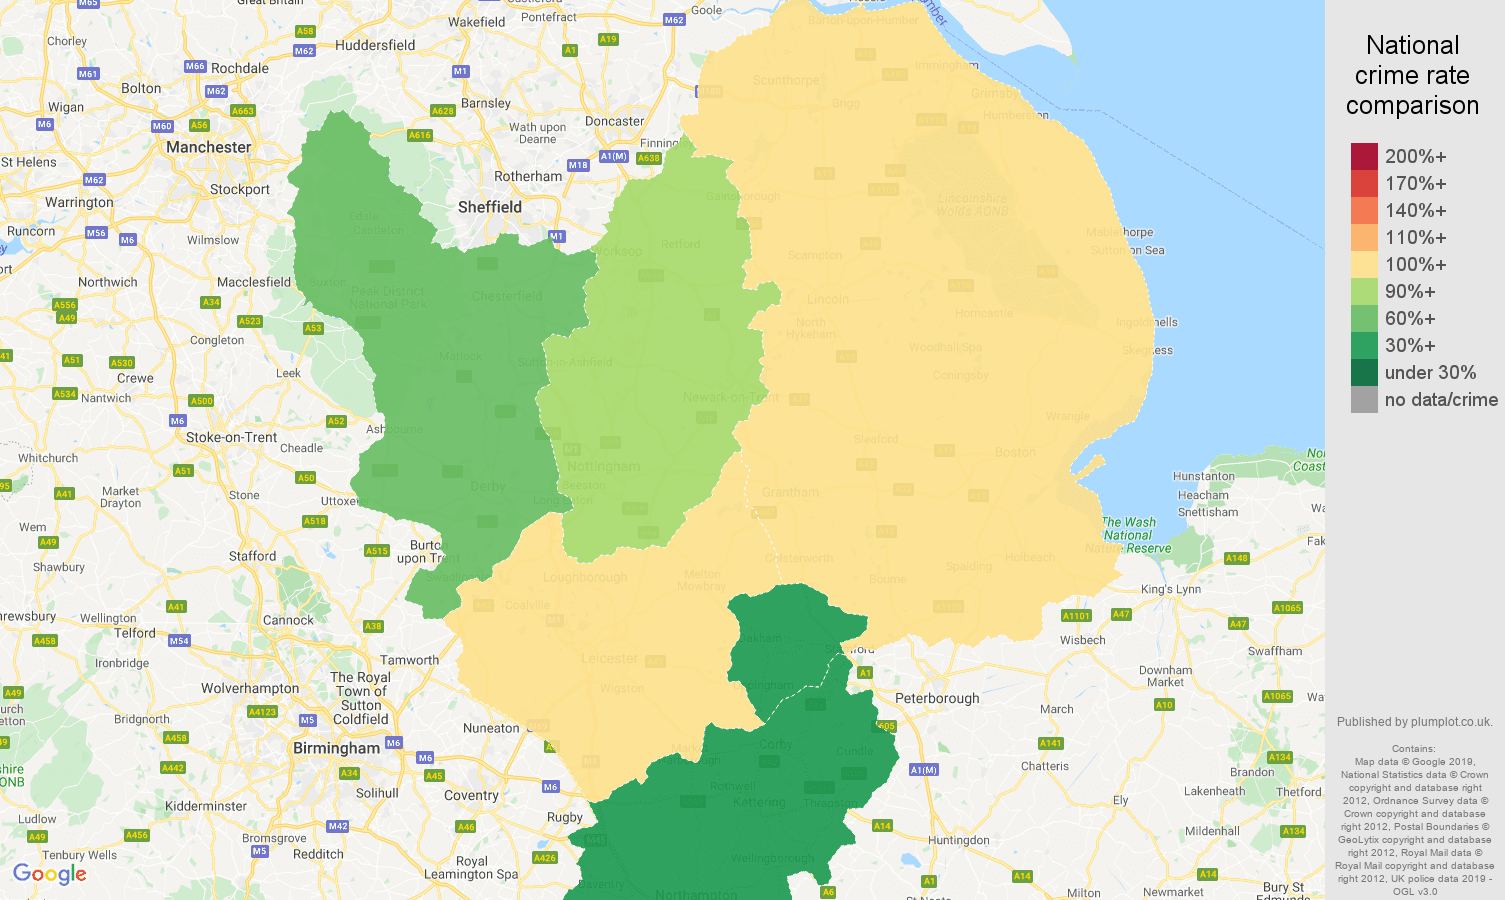 East Midlands public order crime rate comparison map